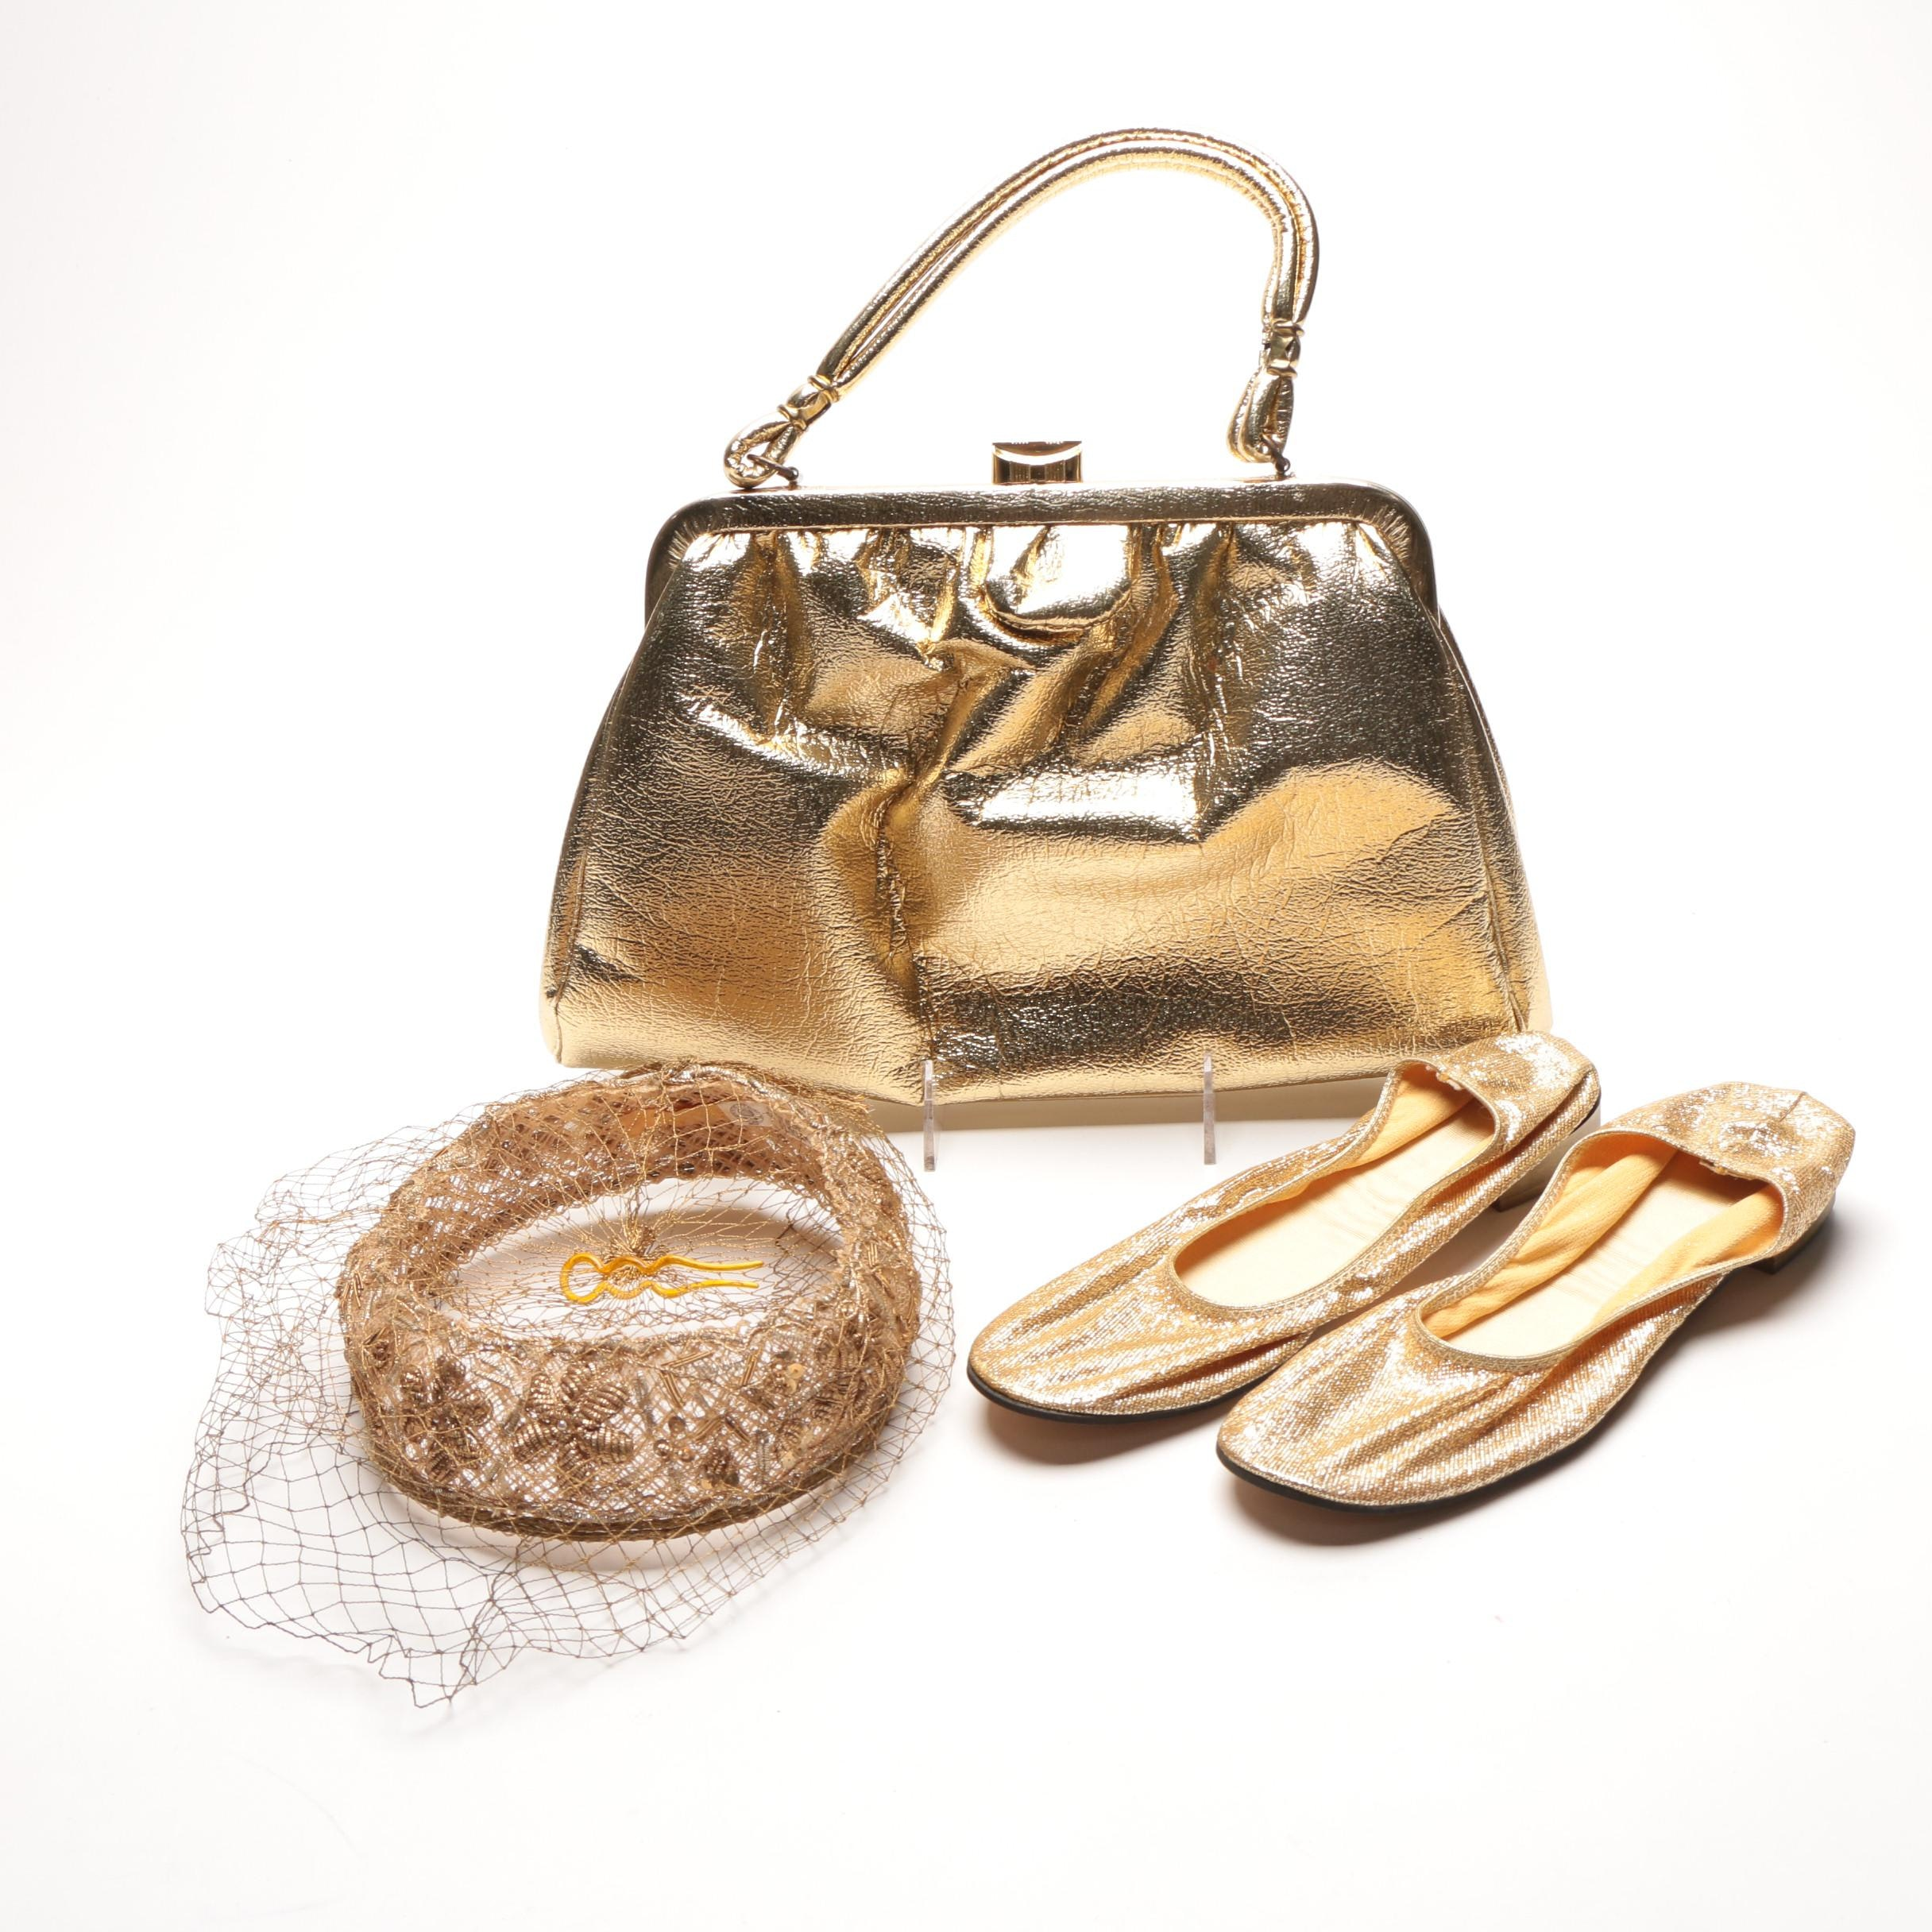 Metallic Gold Tone Vintage Purse, Hat, and Shoes